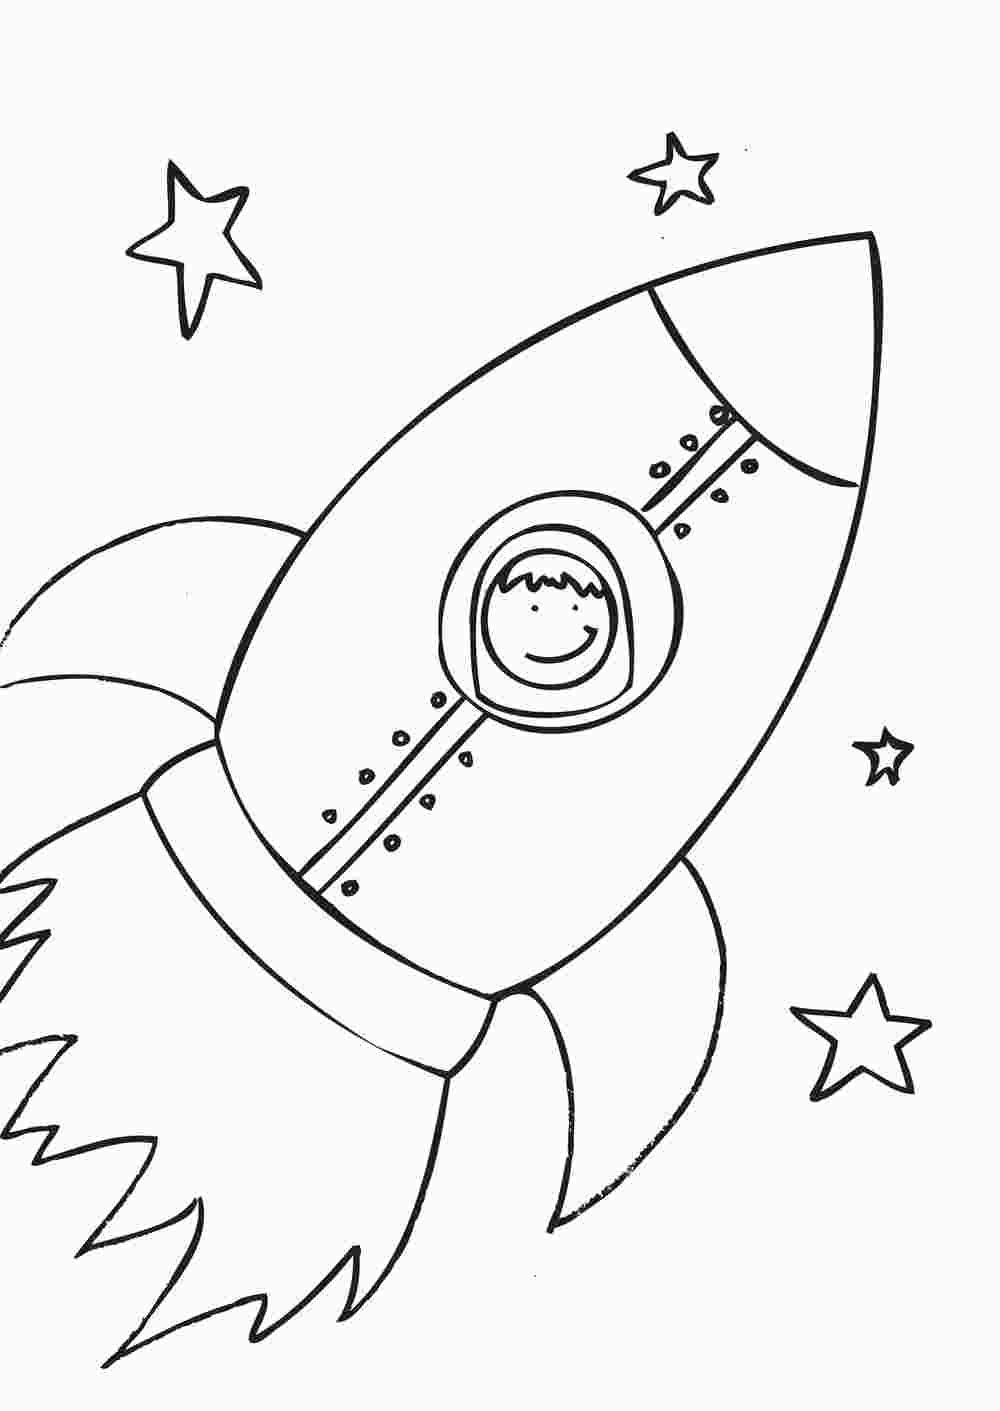 Preschool Rocket Ship Coloring Pages With Images Space